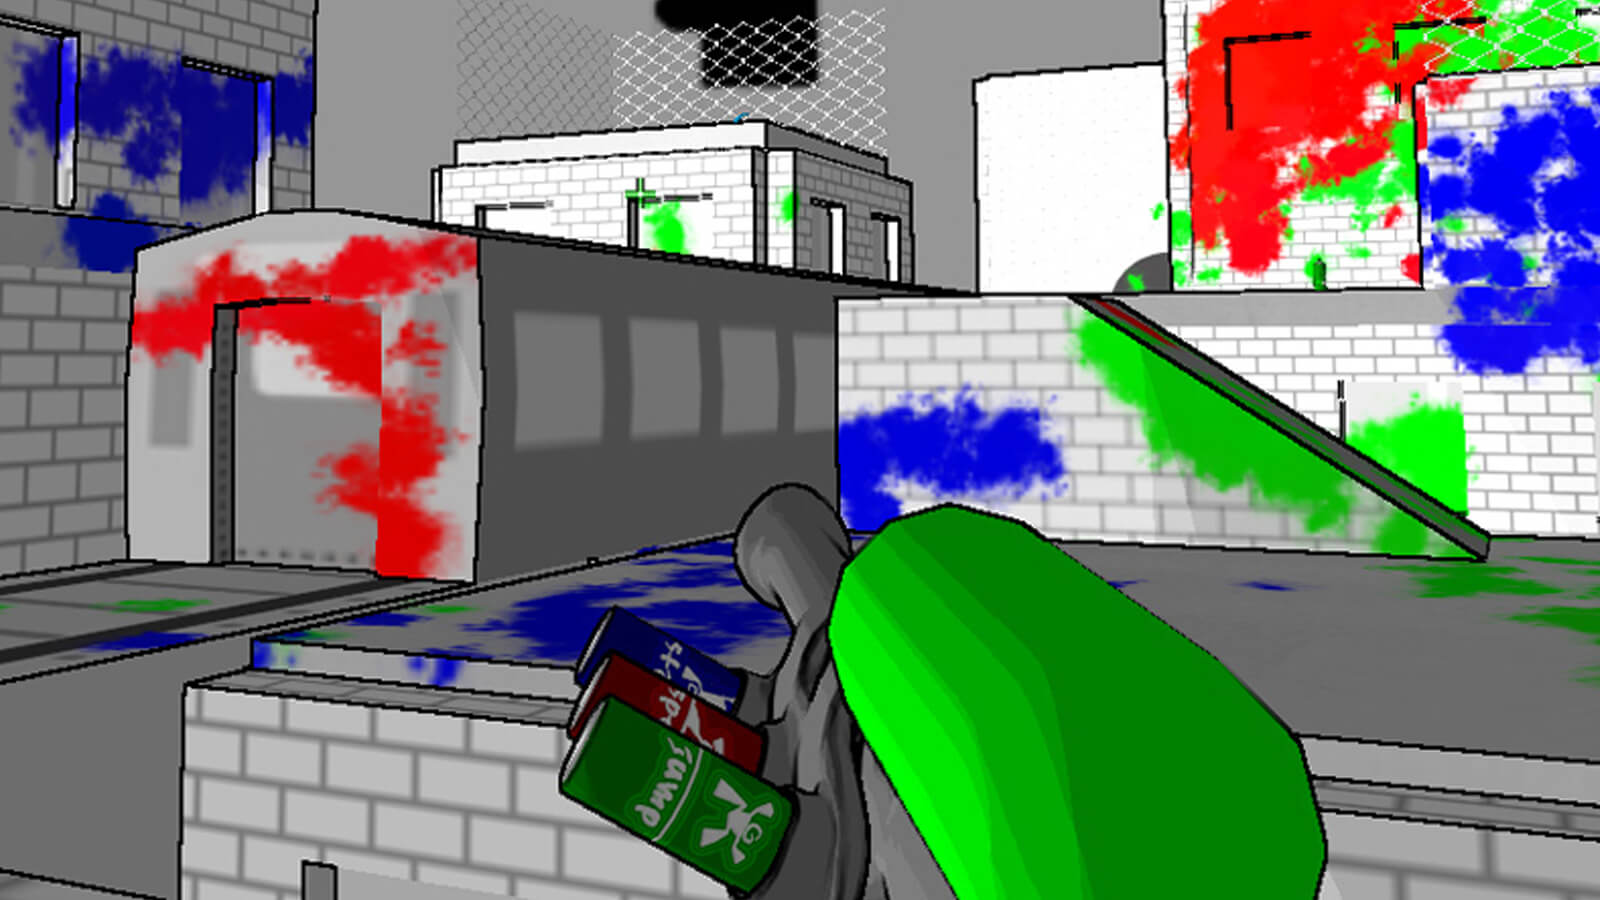 A spray paint gun points at a grey brick building rooftop covered in blue, red and green paint.